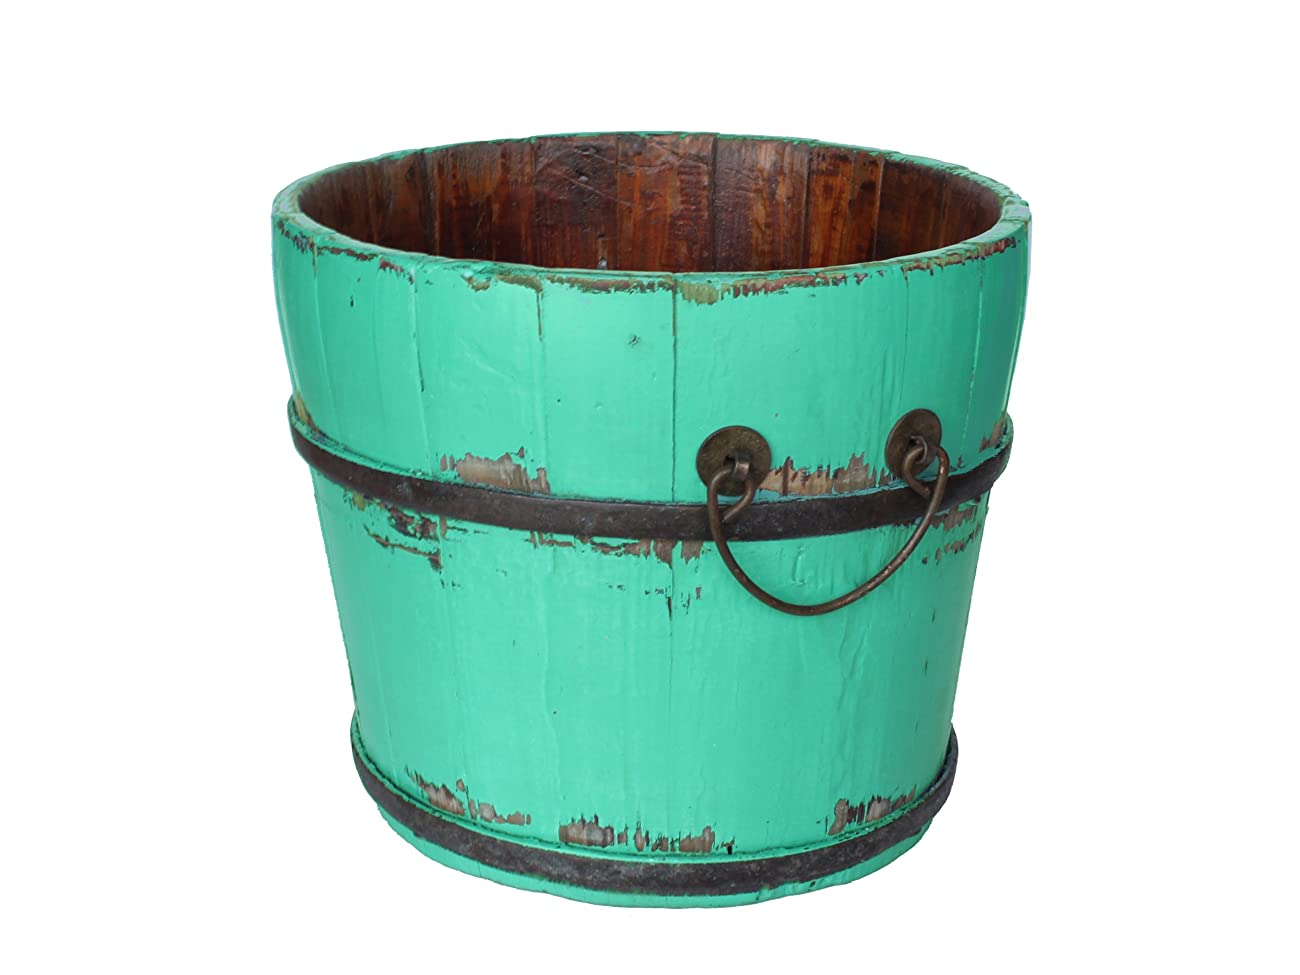 Antique Revival Vintage Chatwell Bucket, Turquoise 0